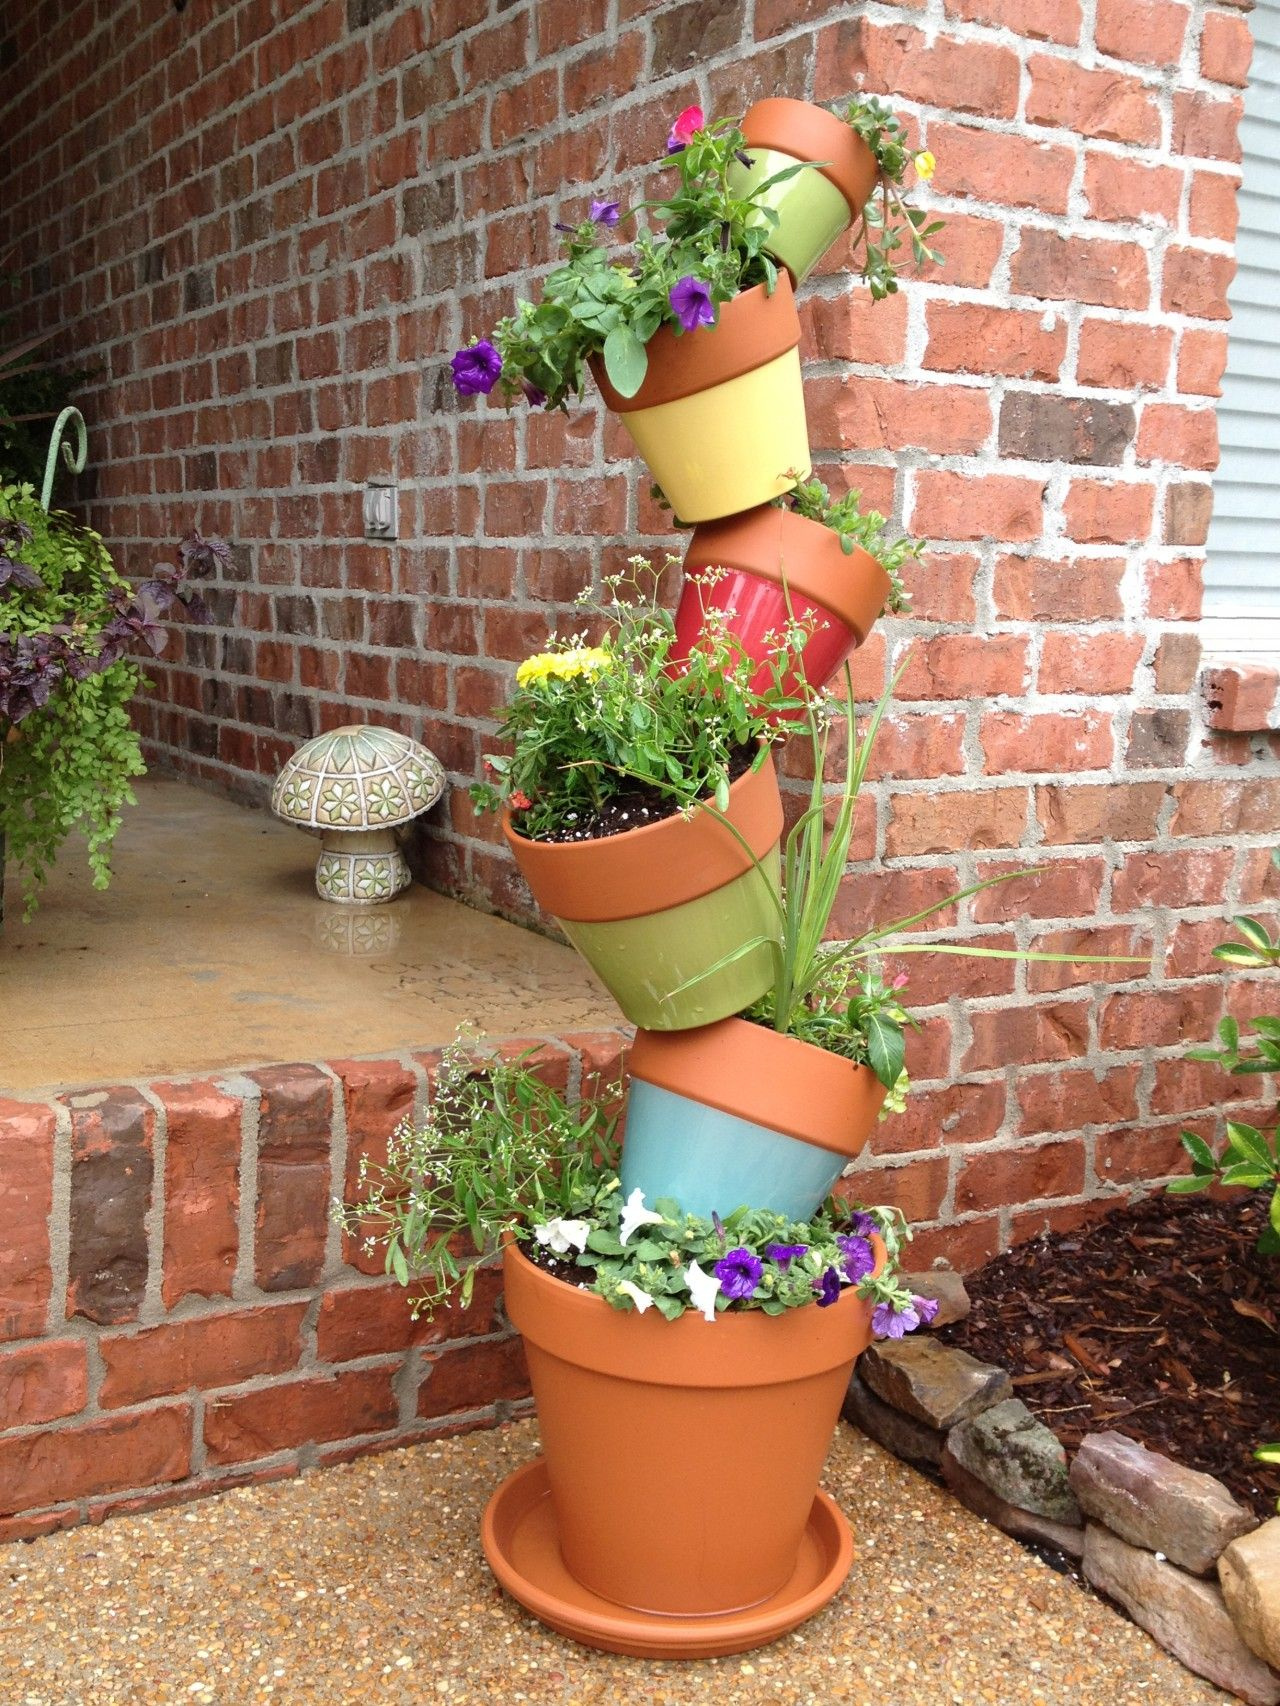 Find Inspiration In 12 Diy Stacked Flower Pots For Bringing Positive Vibes In The Garden Stacked Flower Pots Flower Pots Outdoor Diy Flower Pots